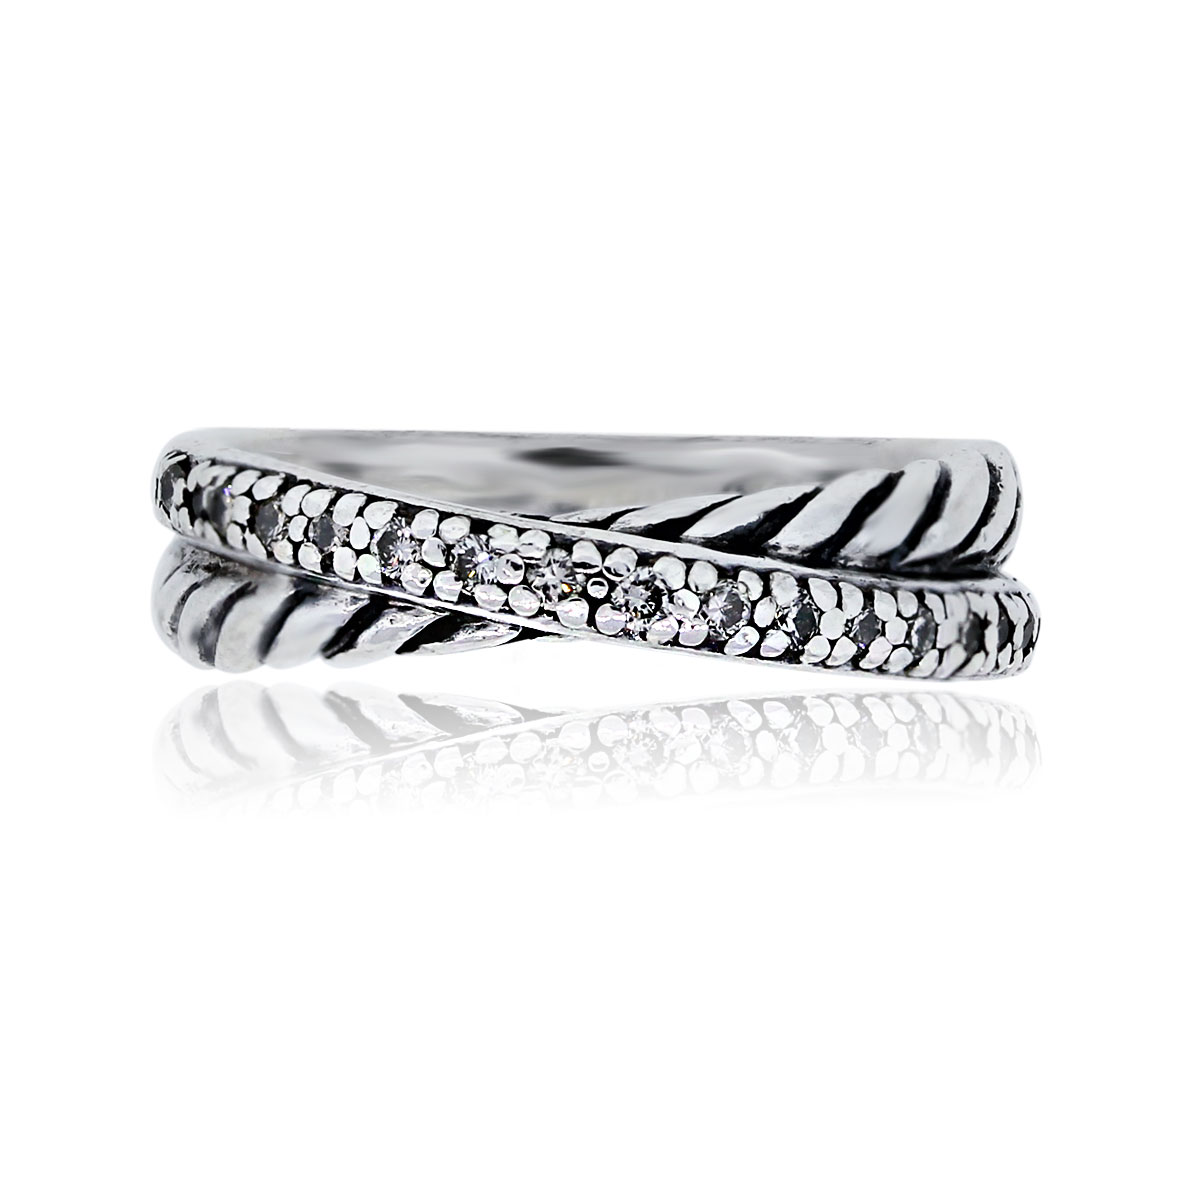 You are viewing this David Yurman Sterling Silver Diamond Cross Over Ring!